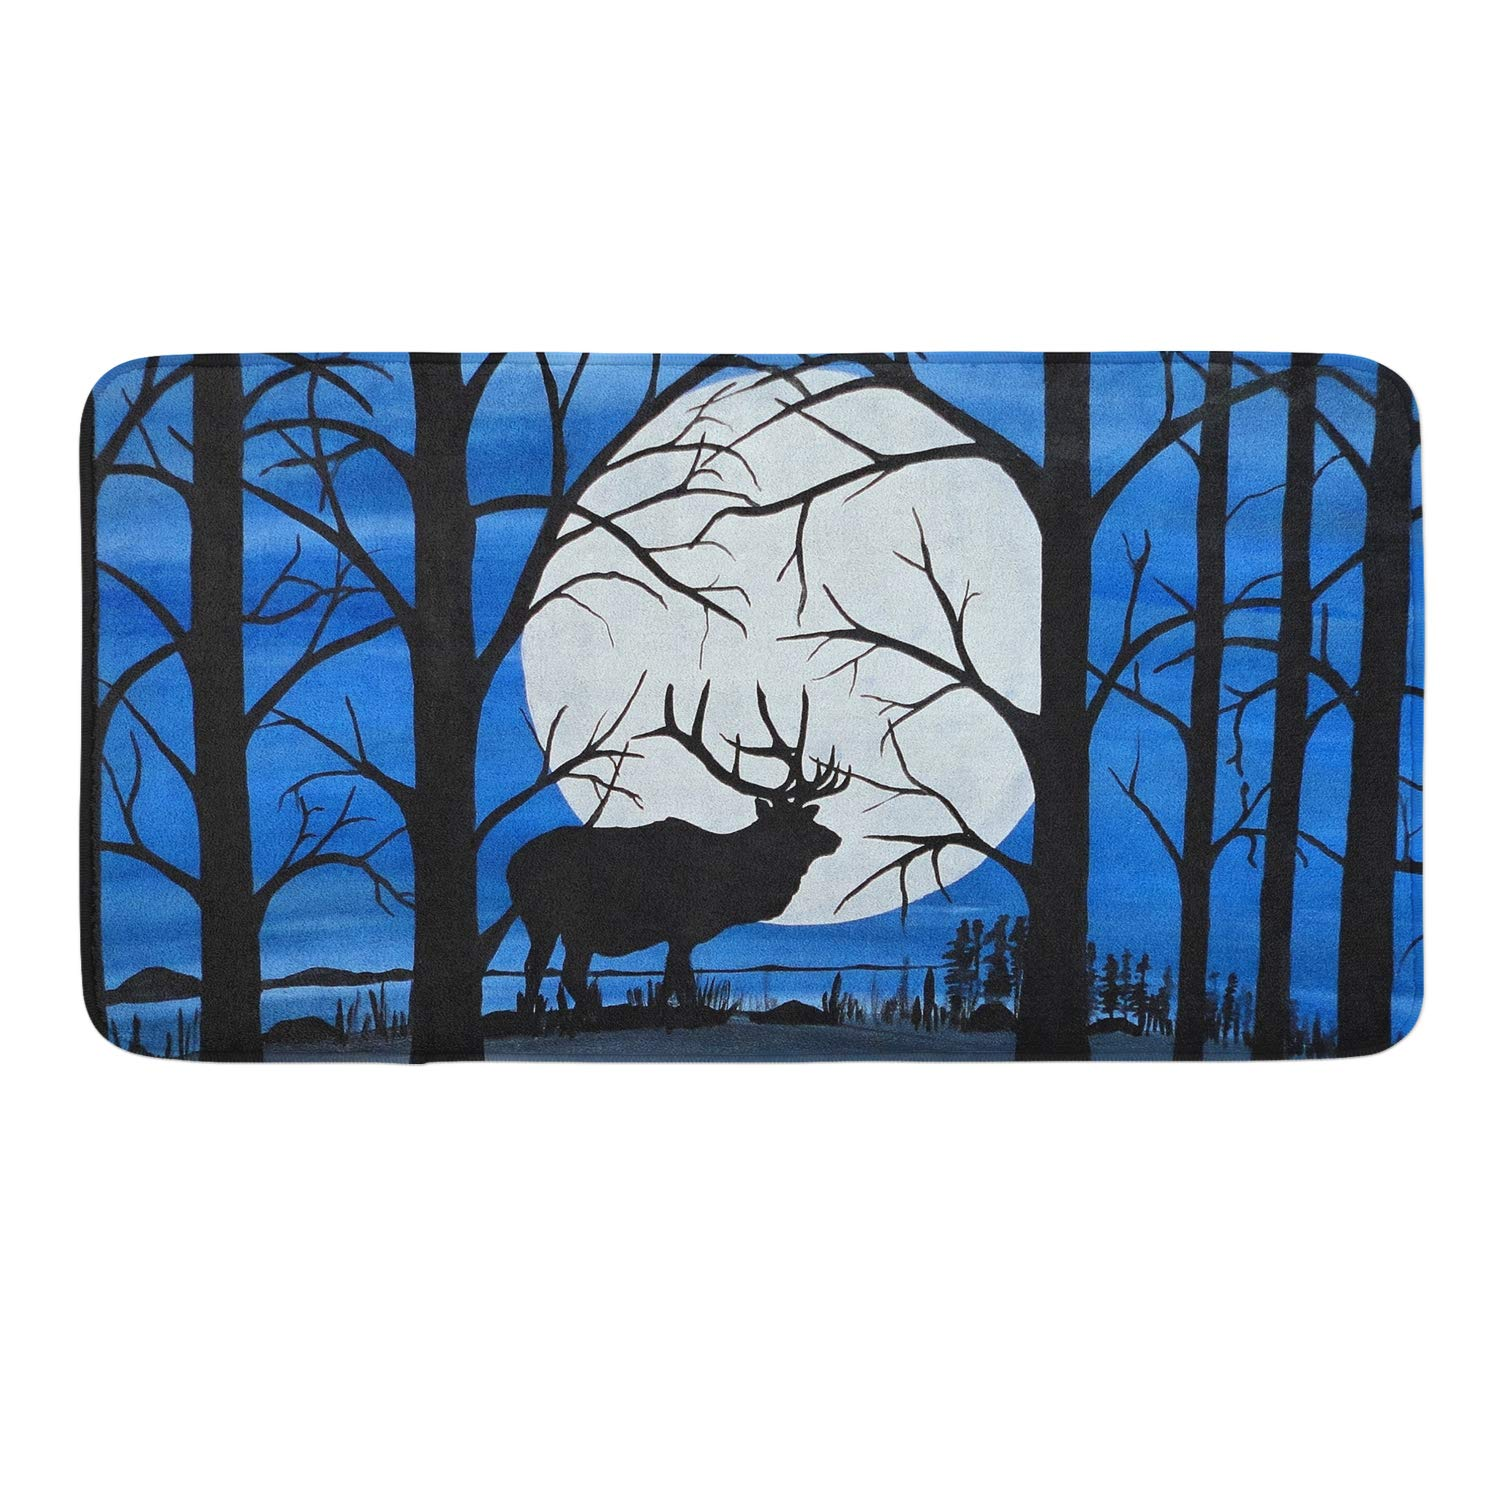 CIGOCI Memory Foam Non-Slip Bathroom Mat - 18 x 36 Inch, Extra Absorbent,Soft,Duarable and Quick-Dry Shaggy Mat, 3D PrintStranger Galaxy Starry Moose Trees Thing